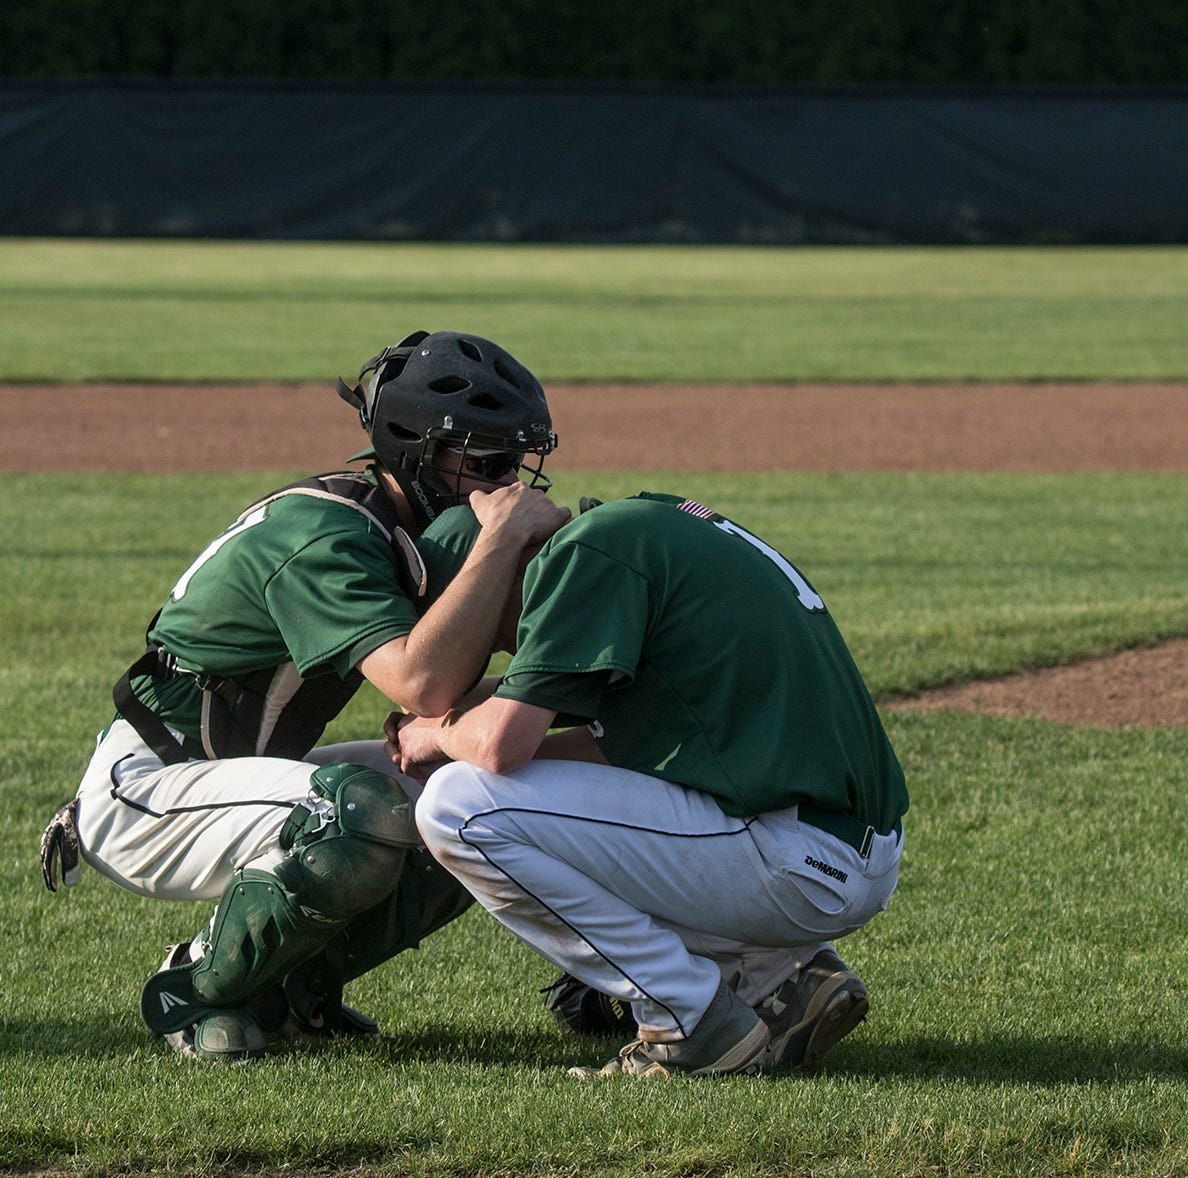 Northridge nipped by West Jefferson in district baseball final